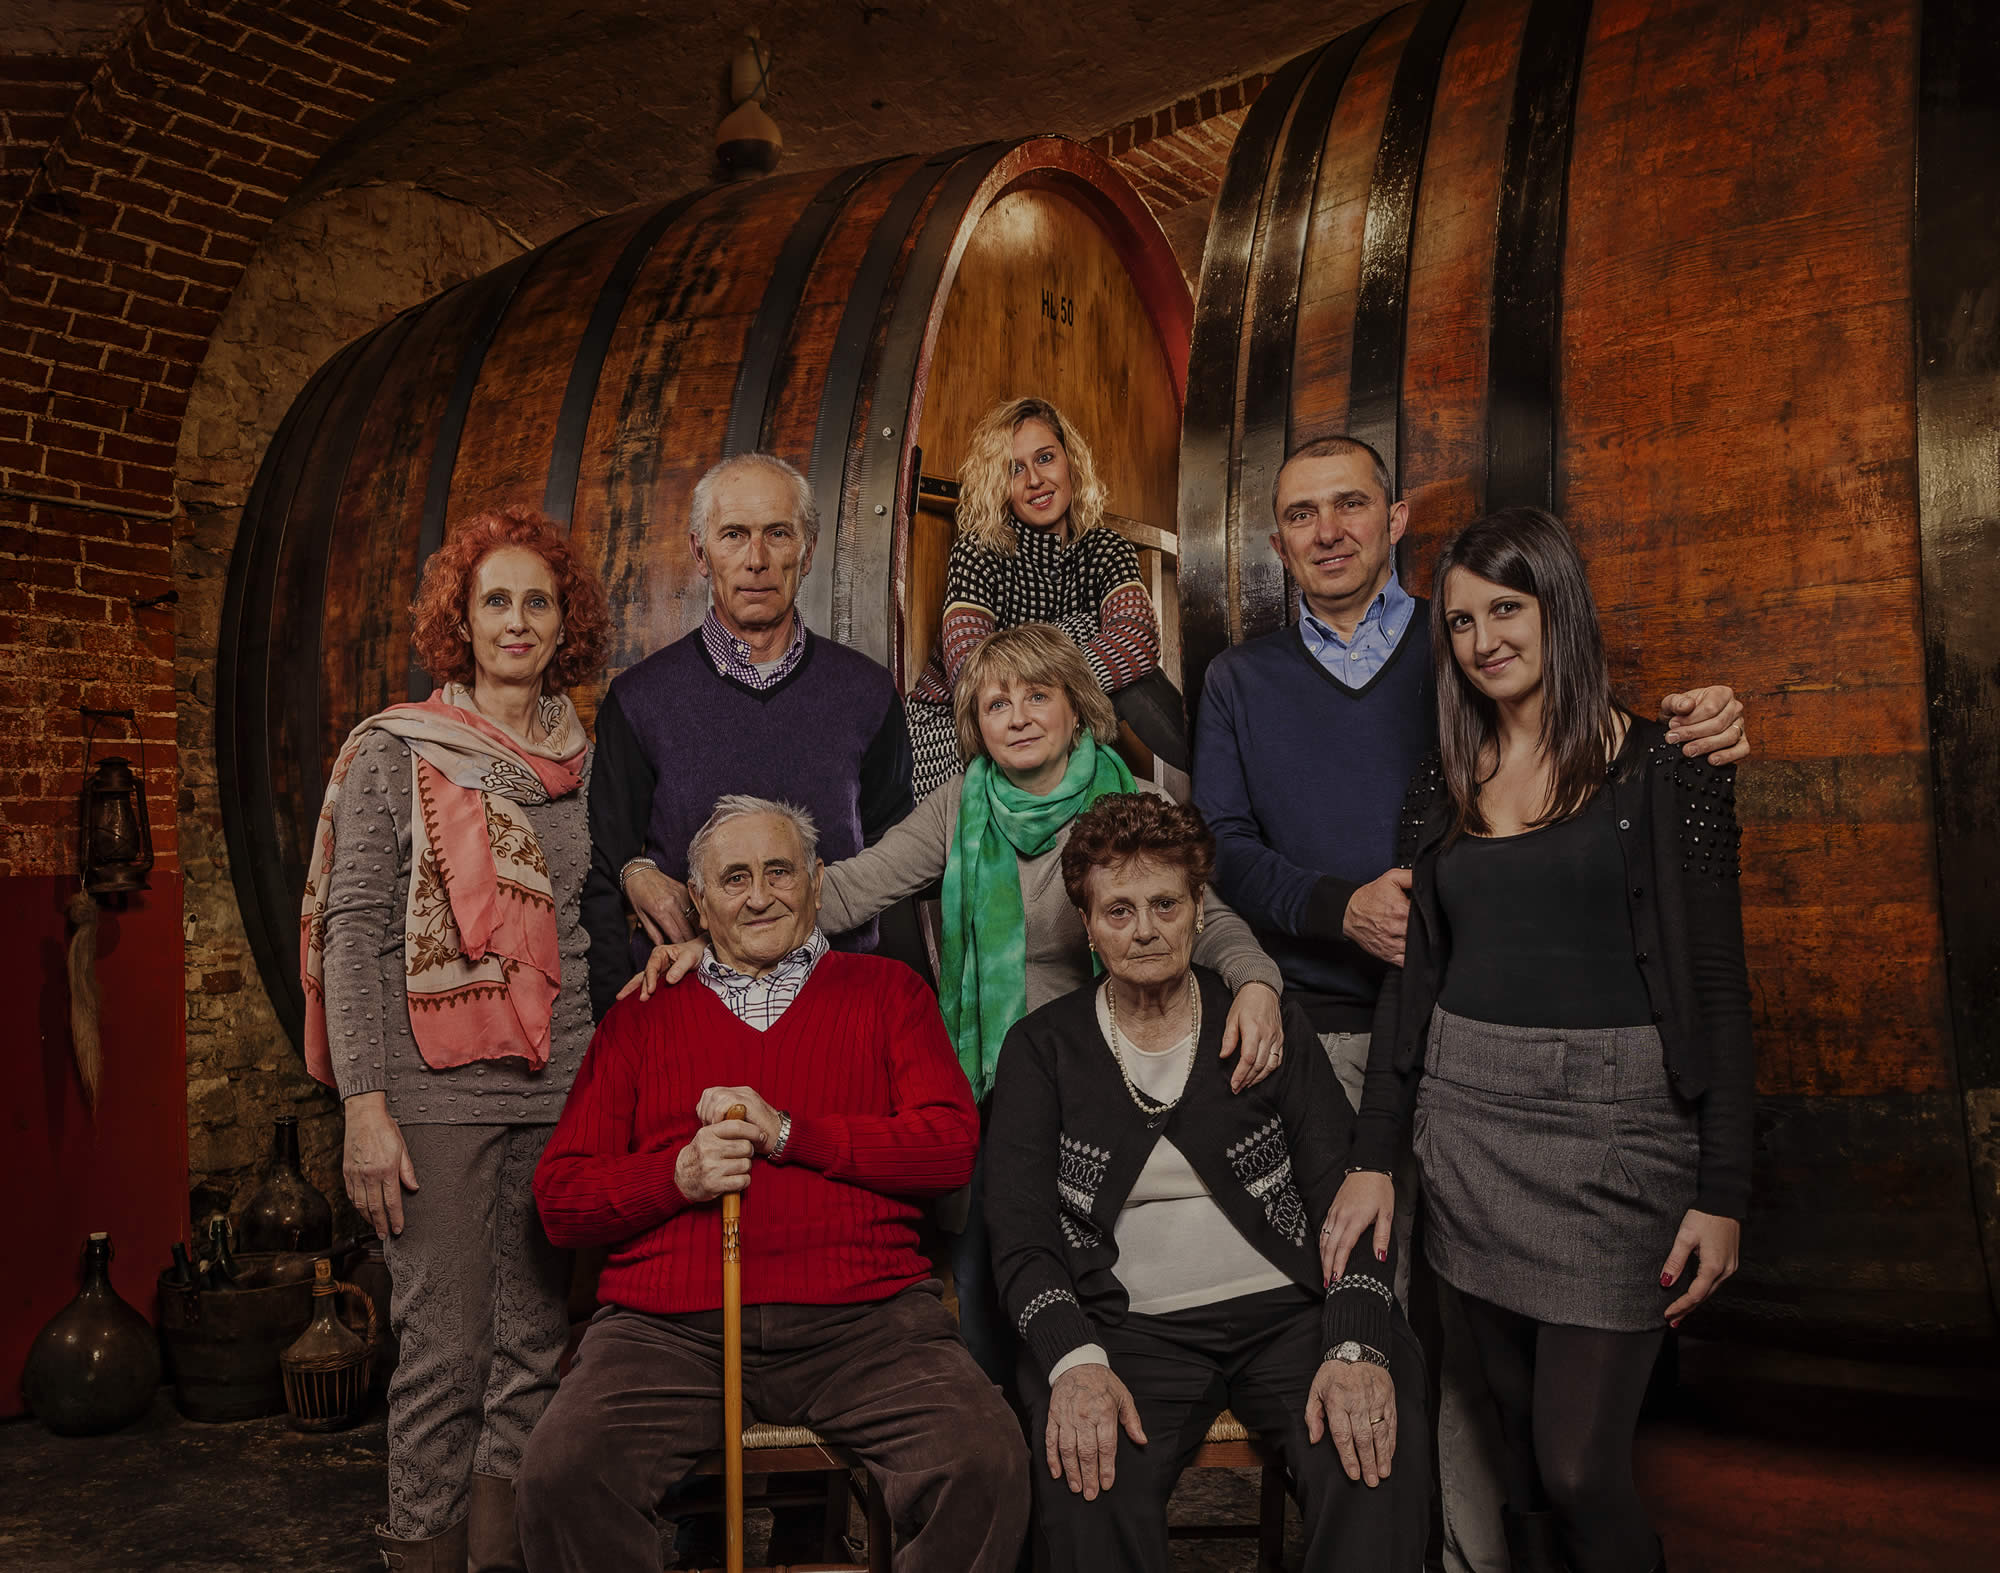 Borgogno Family - Winery in Barolo